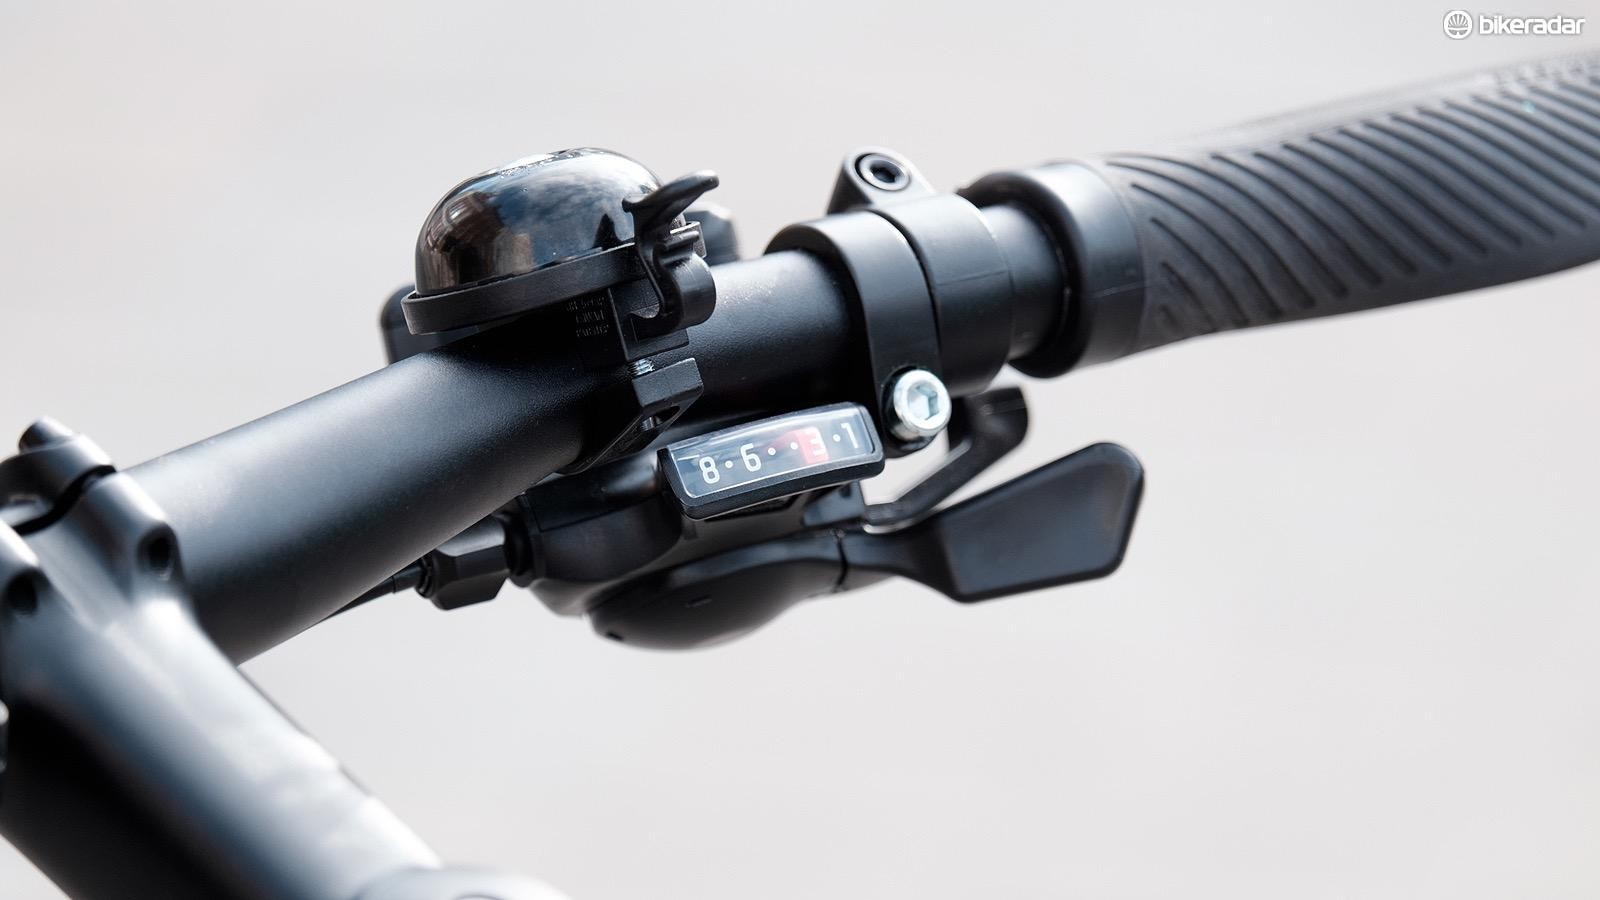 Trigger shifters on a Specialized Sirrus commuter bike